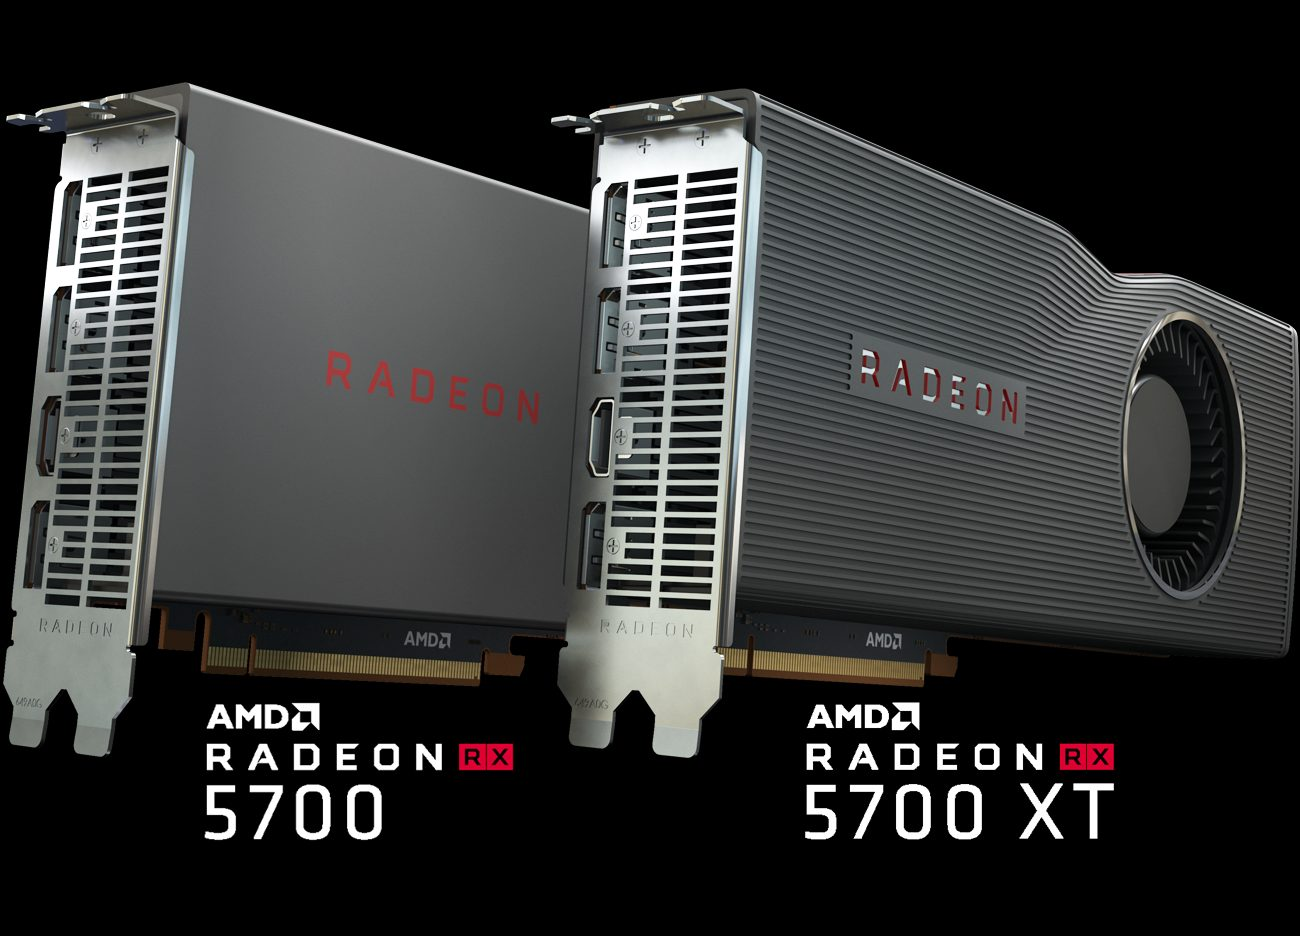 AMD Radeon RX 5700 XT and RX 5700 Video Card Review - Page 2 of 21